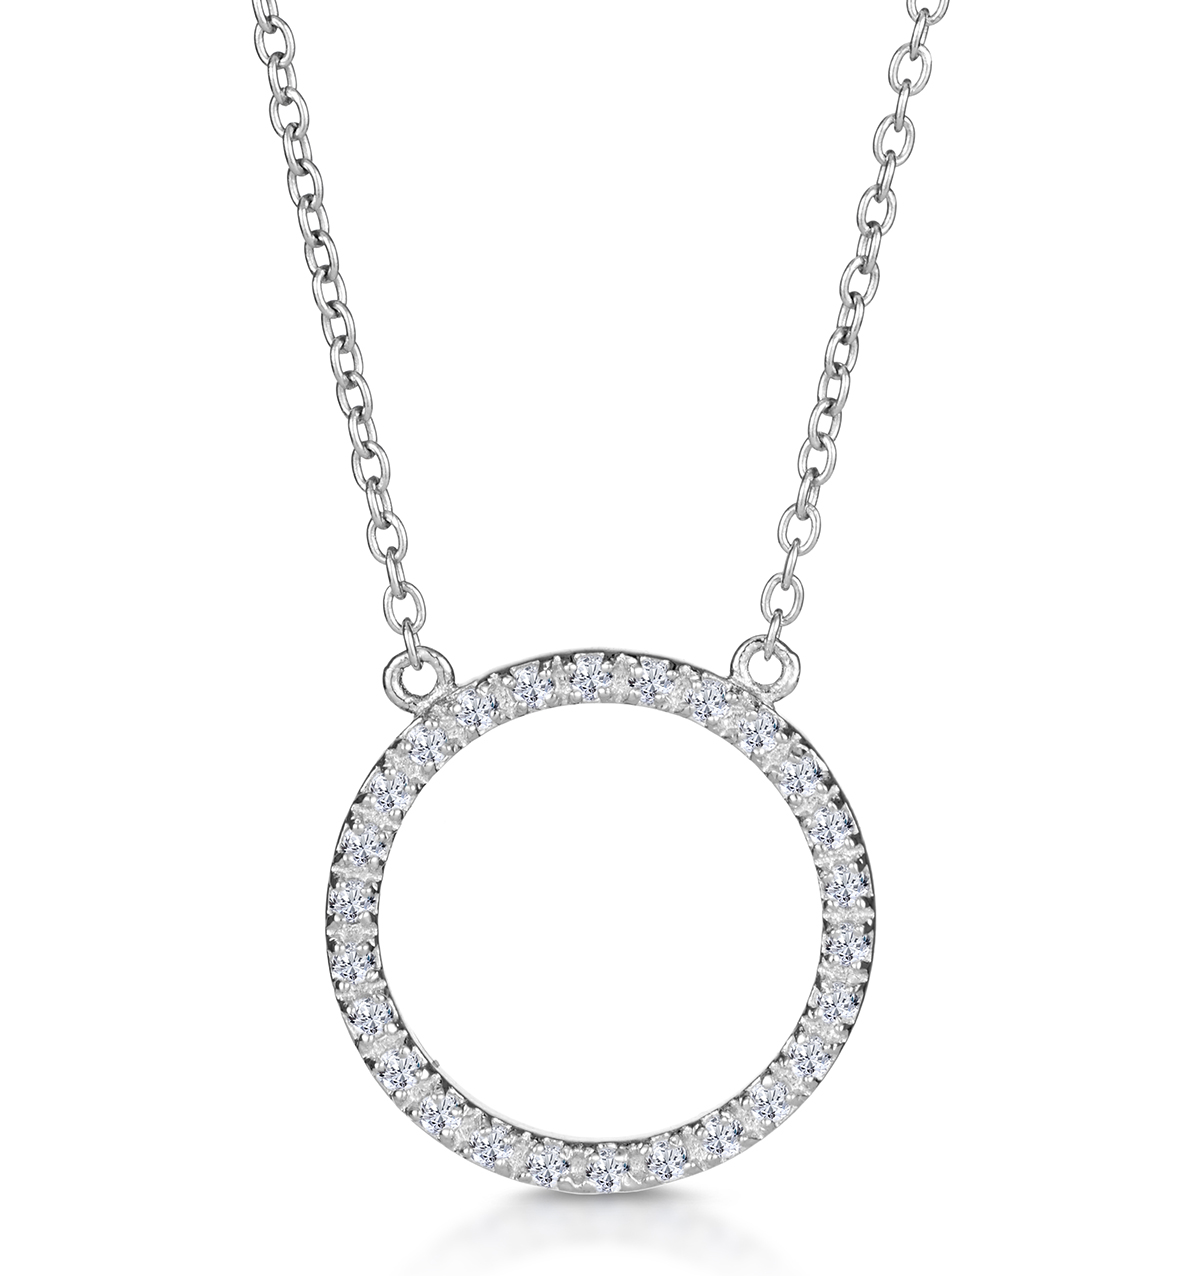 SILVER CIRCLE OF LIFE NECKLACE WITH WHITE TOPAZ - TESORO COLLECTION